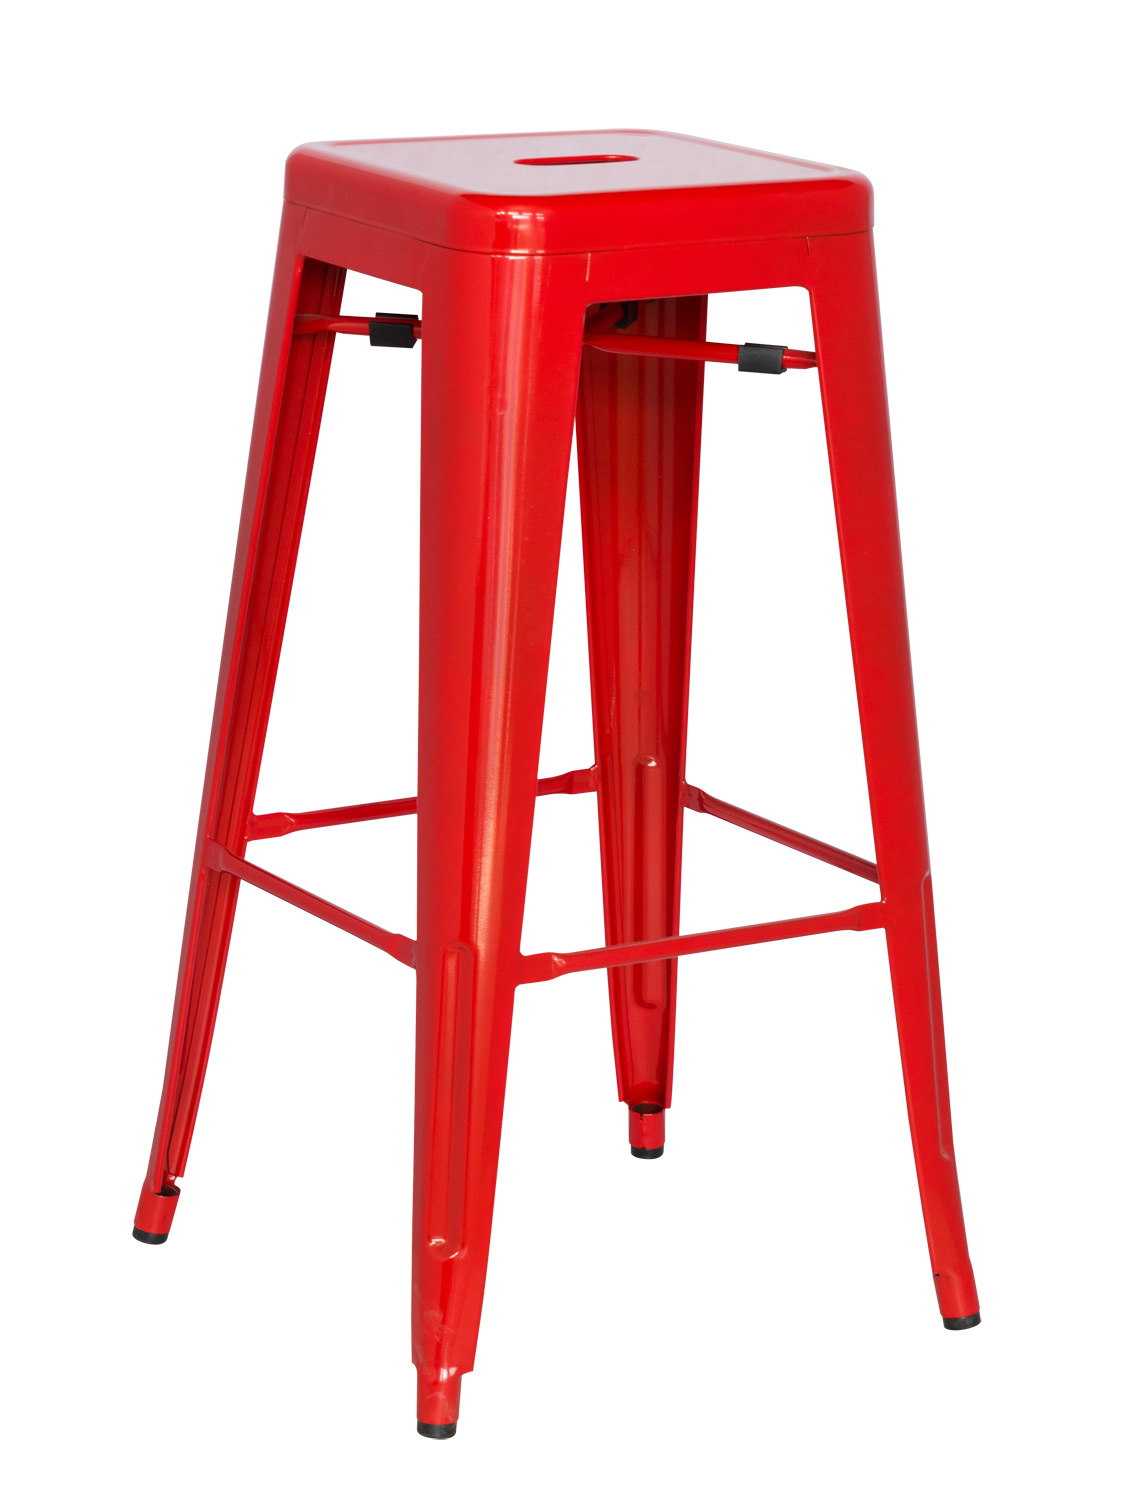 Chintaly Imports 8015 Galvanized Steel Bar Stool - Red